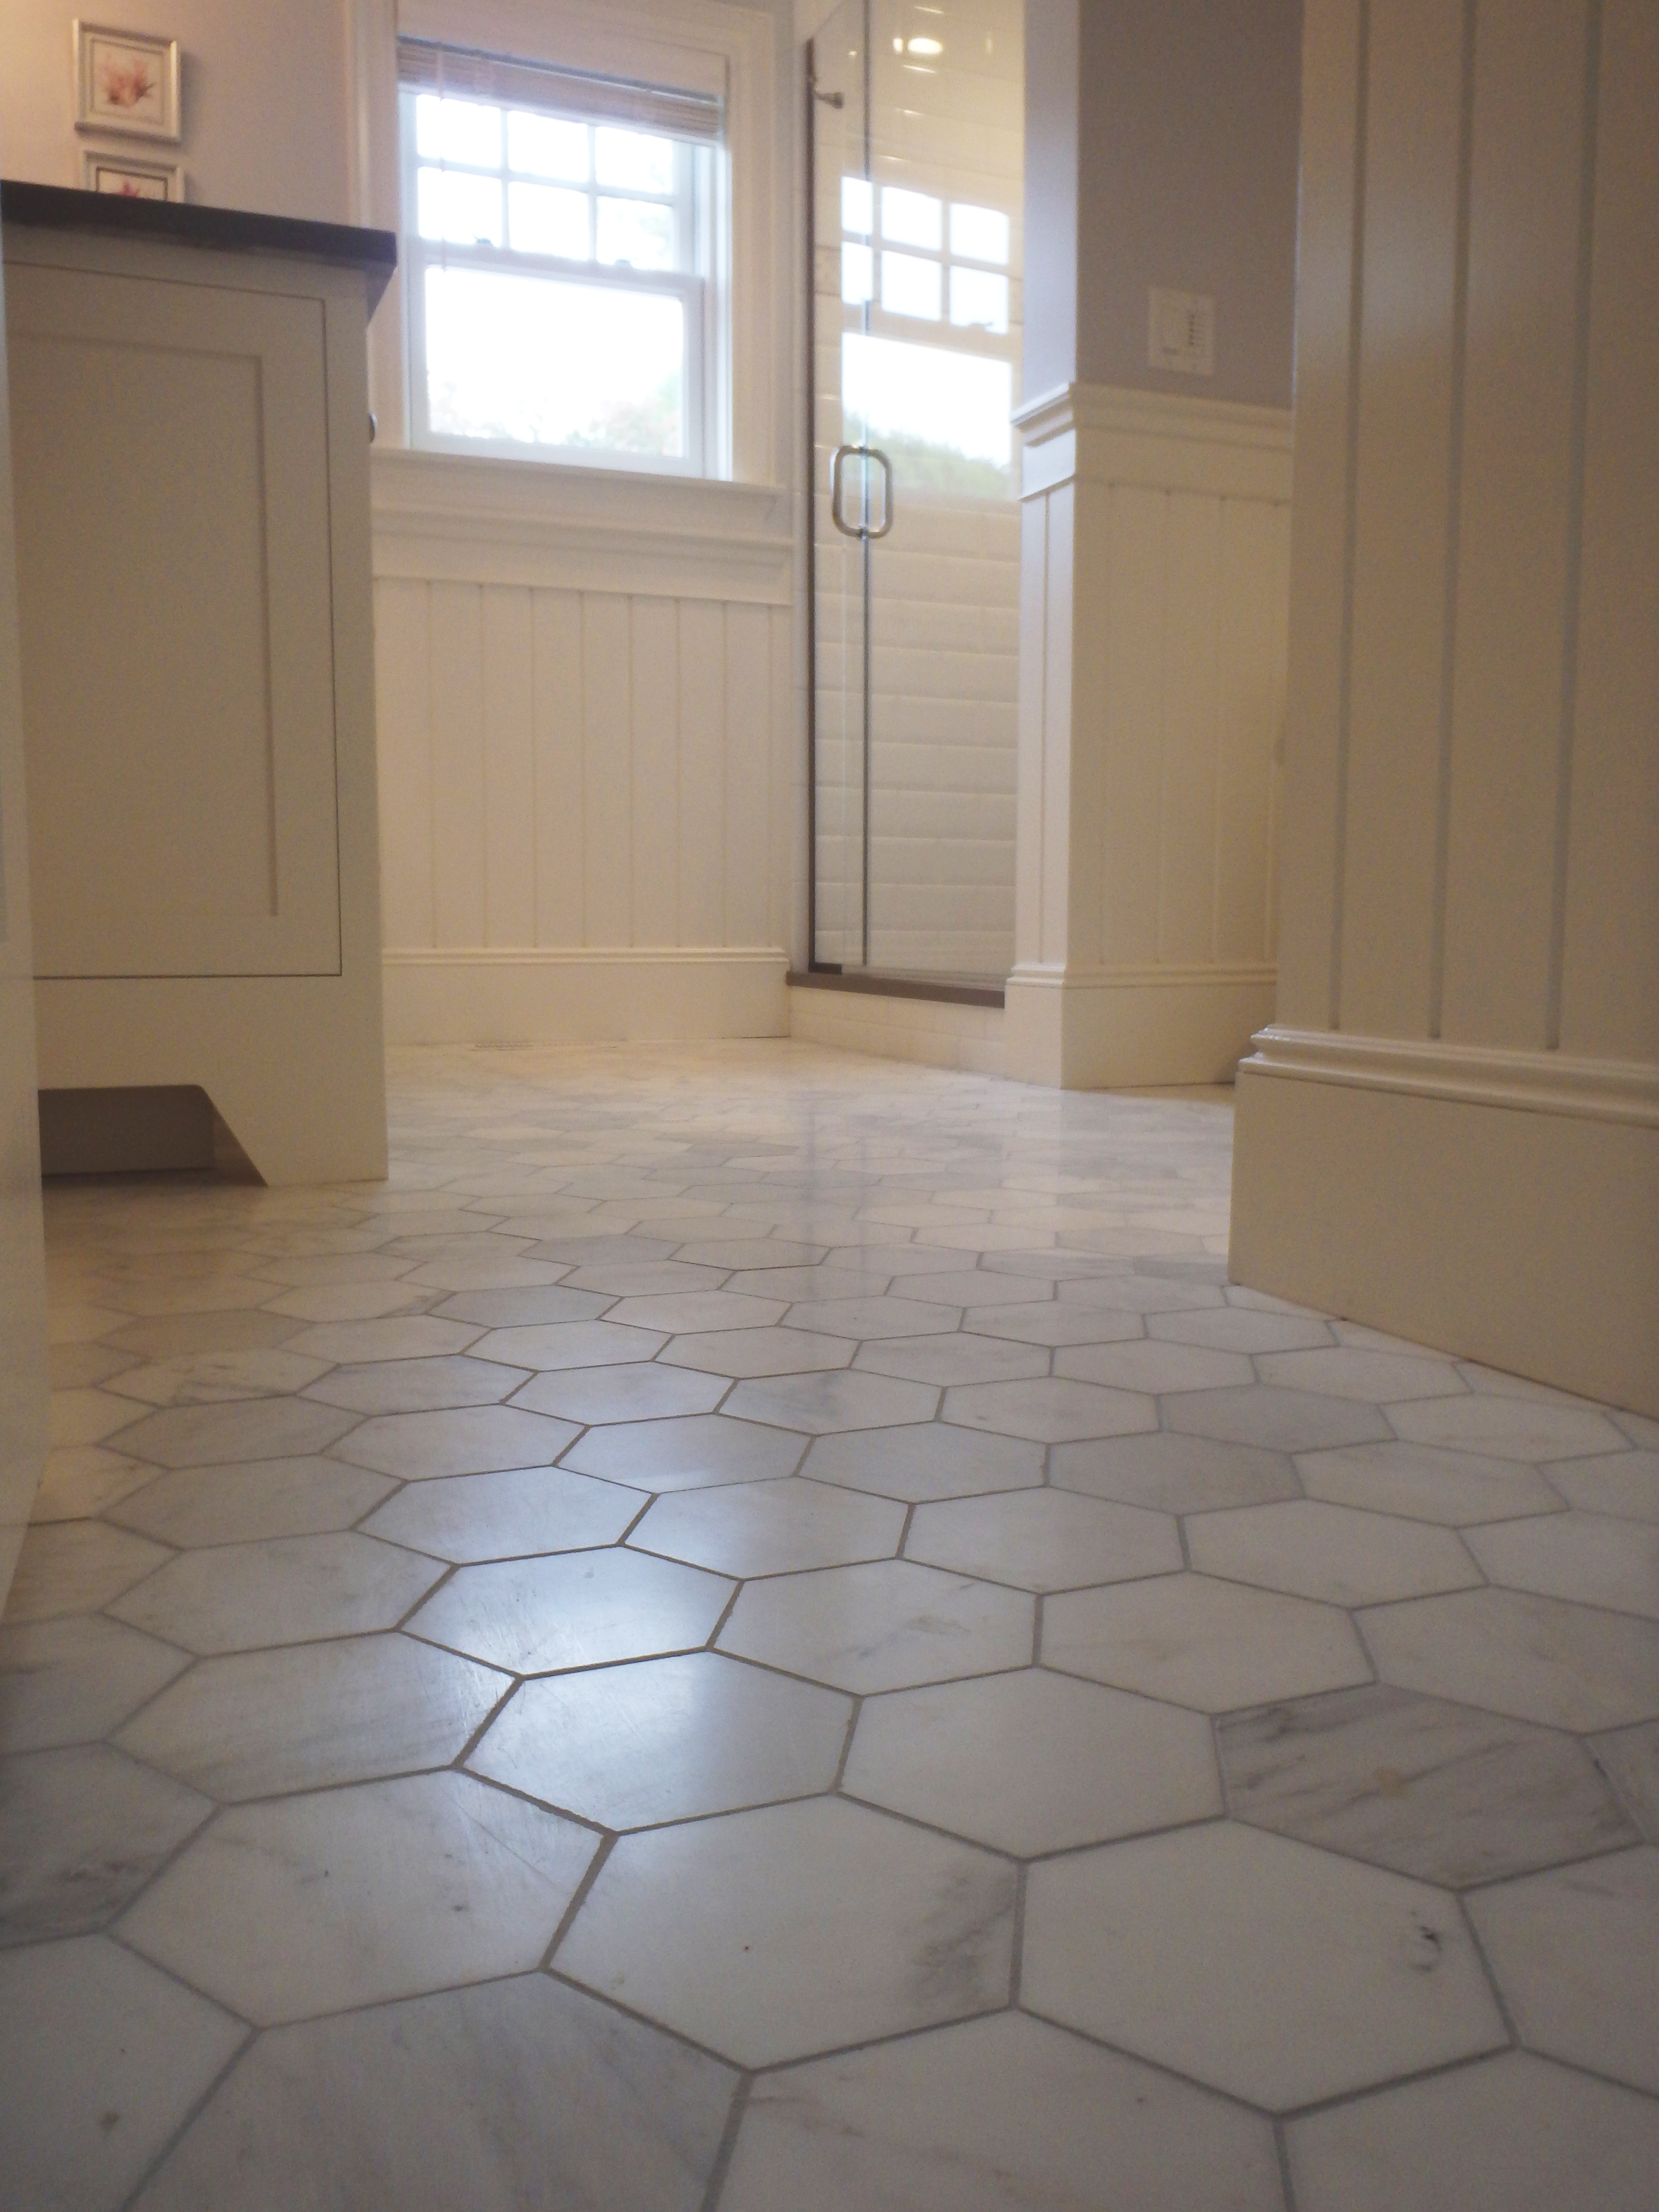 Cape cod tile tile design ideas Marble hex tile bathroom floor